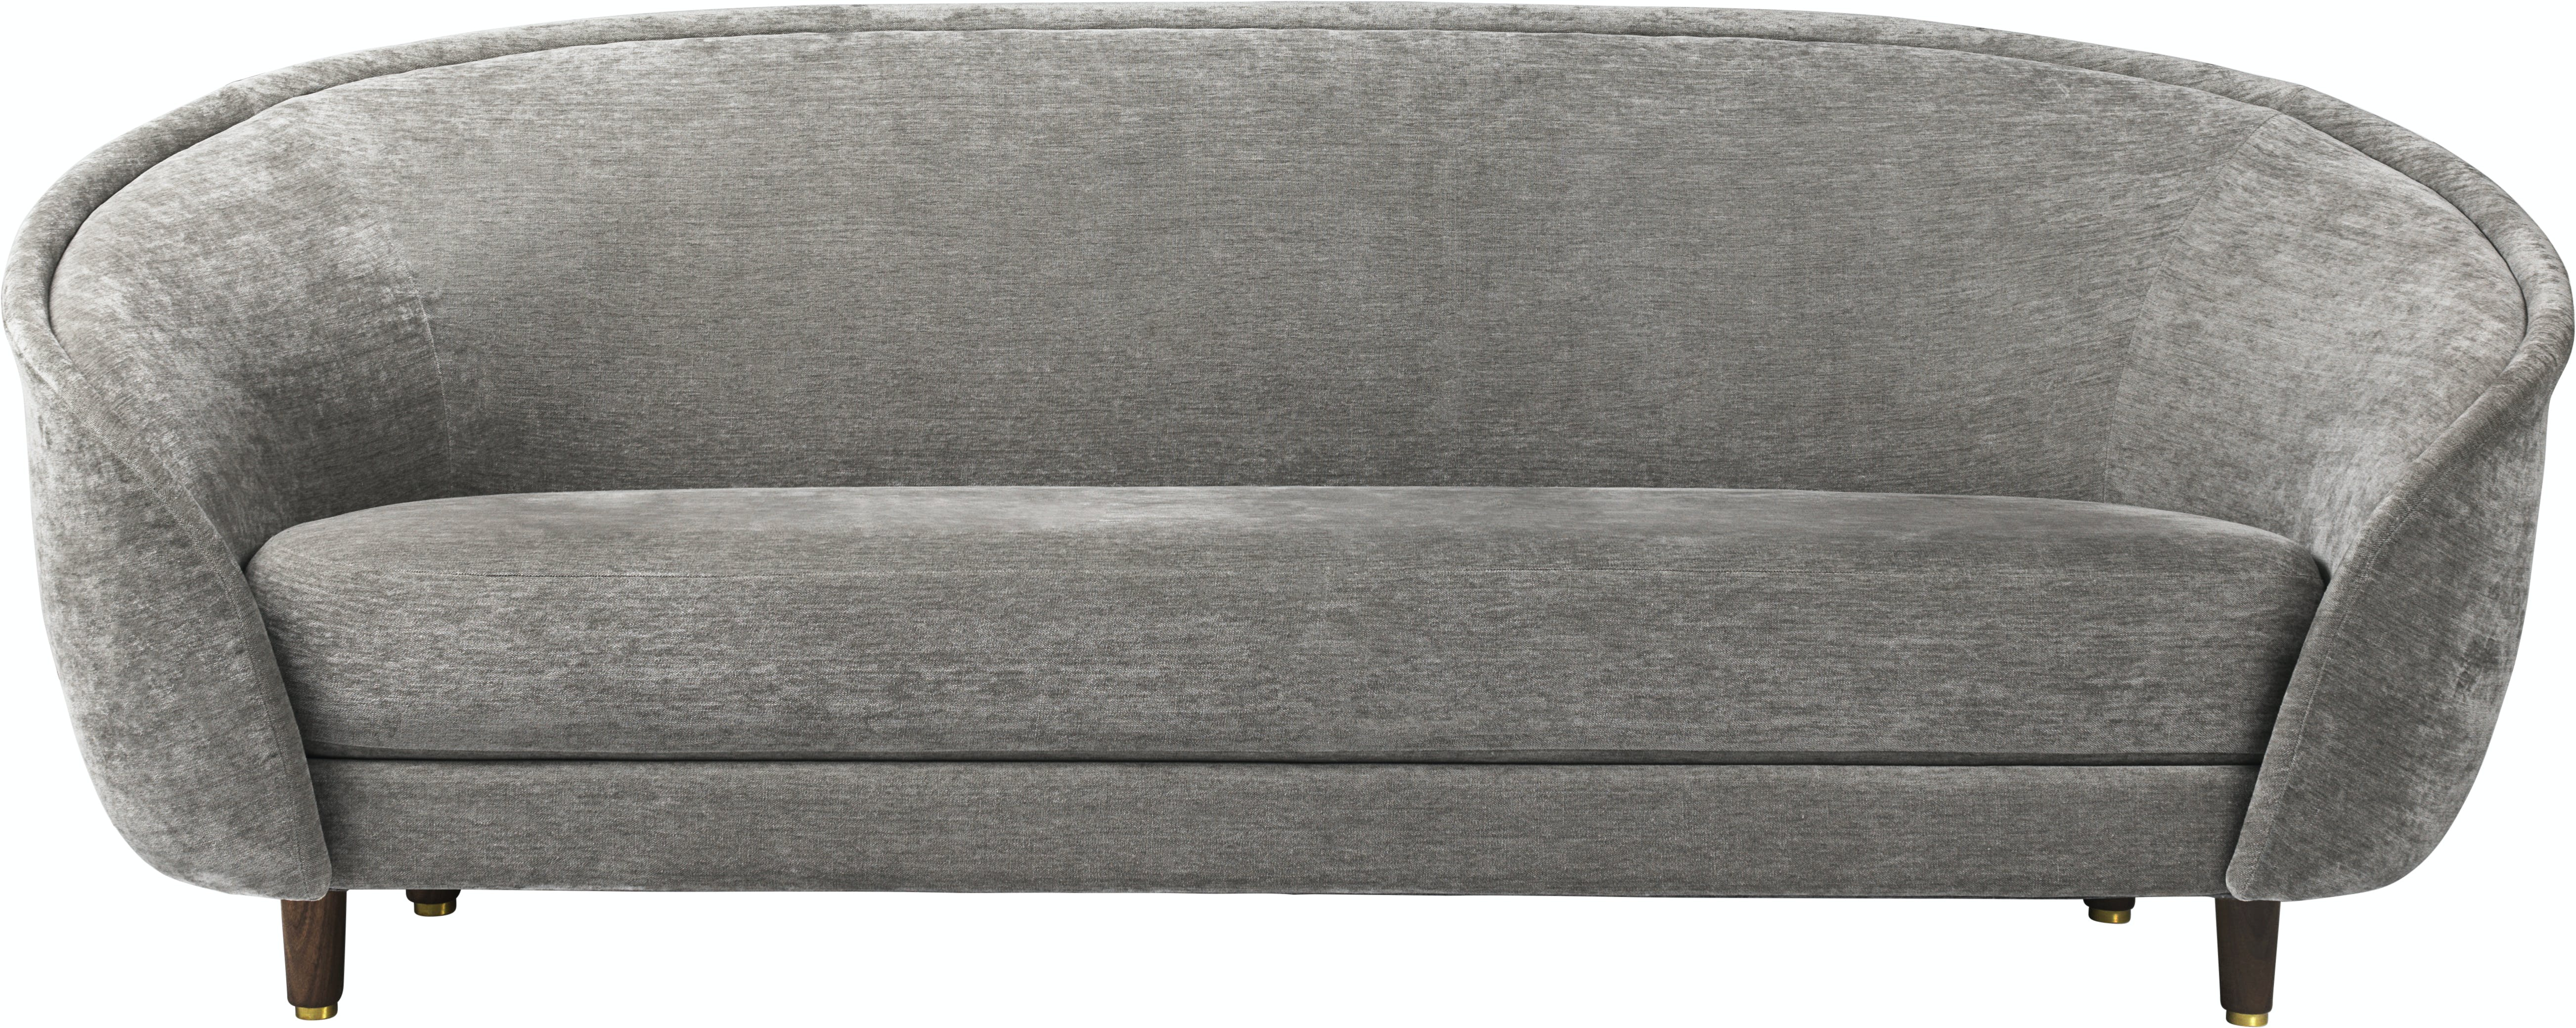 Revers Sofa 215X100 Wood Fully Upholstered American Walnut Dedar Belsuede 011 Front 1